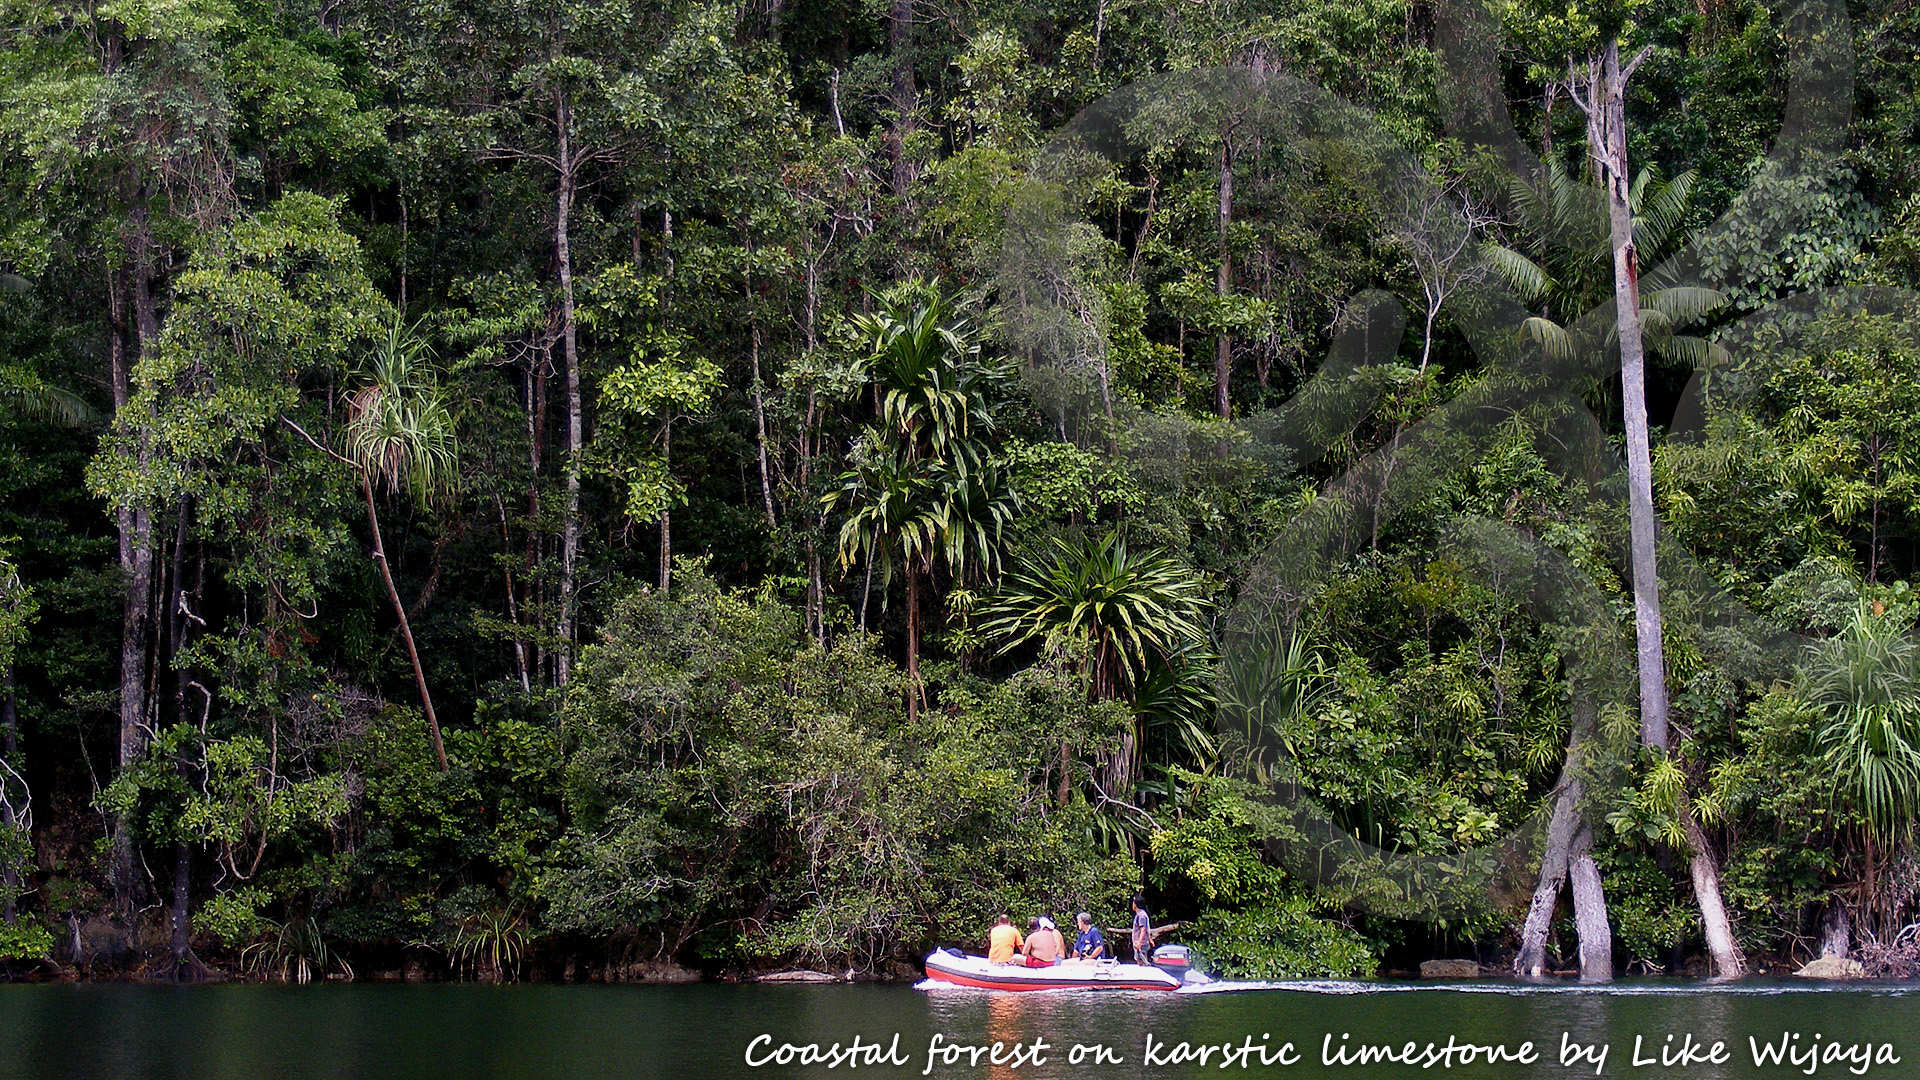 Cruising the Raja Ampat islands of Waigeo and Misool provides an interesting window of observation into otherwise impenetrable lowland forests on karstic limestone. Copyright © Like Wijaya